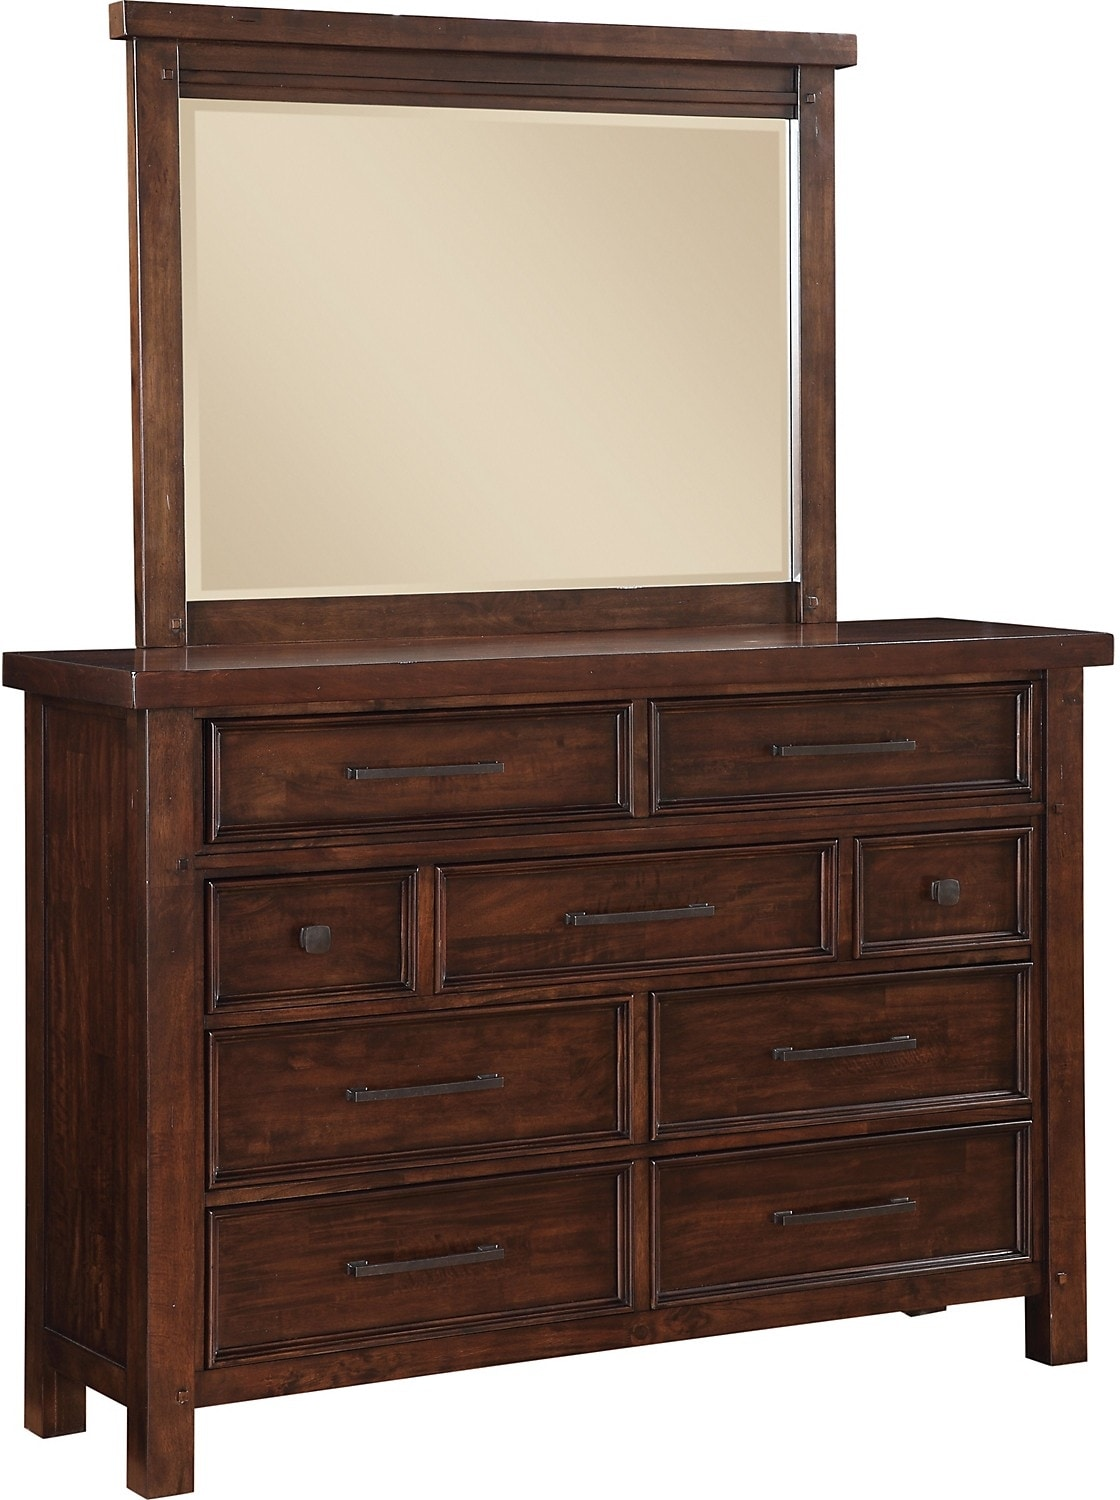 Bedroom Furniture - Sonoma Dresser